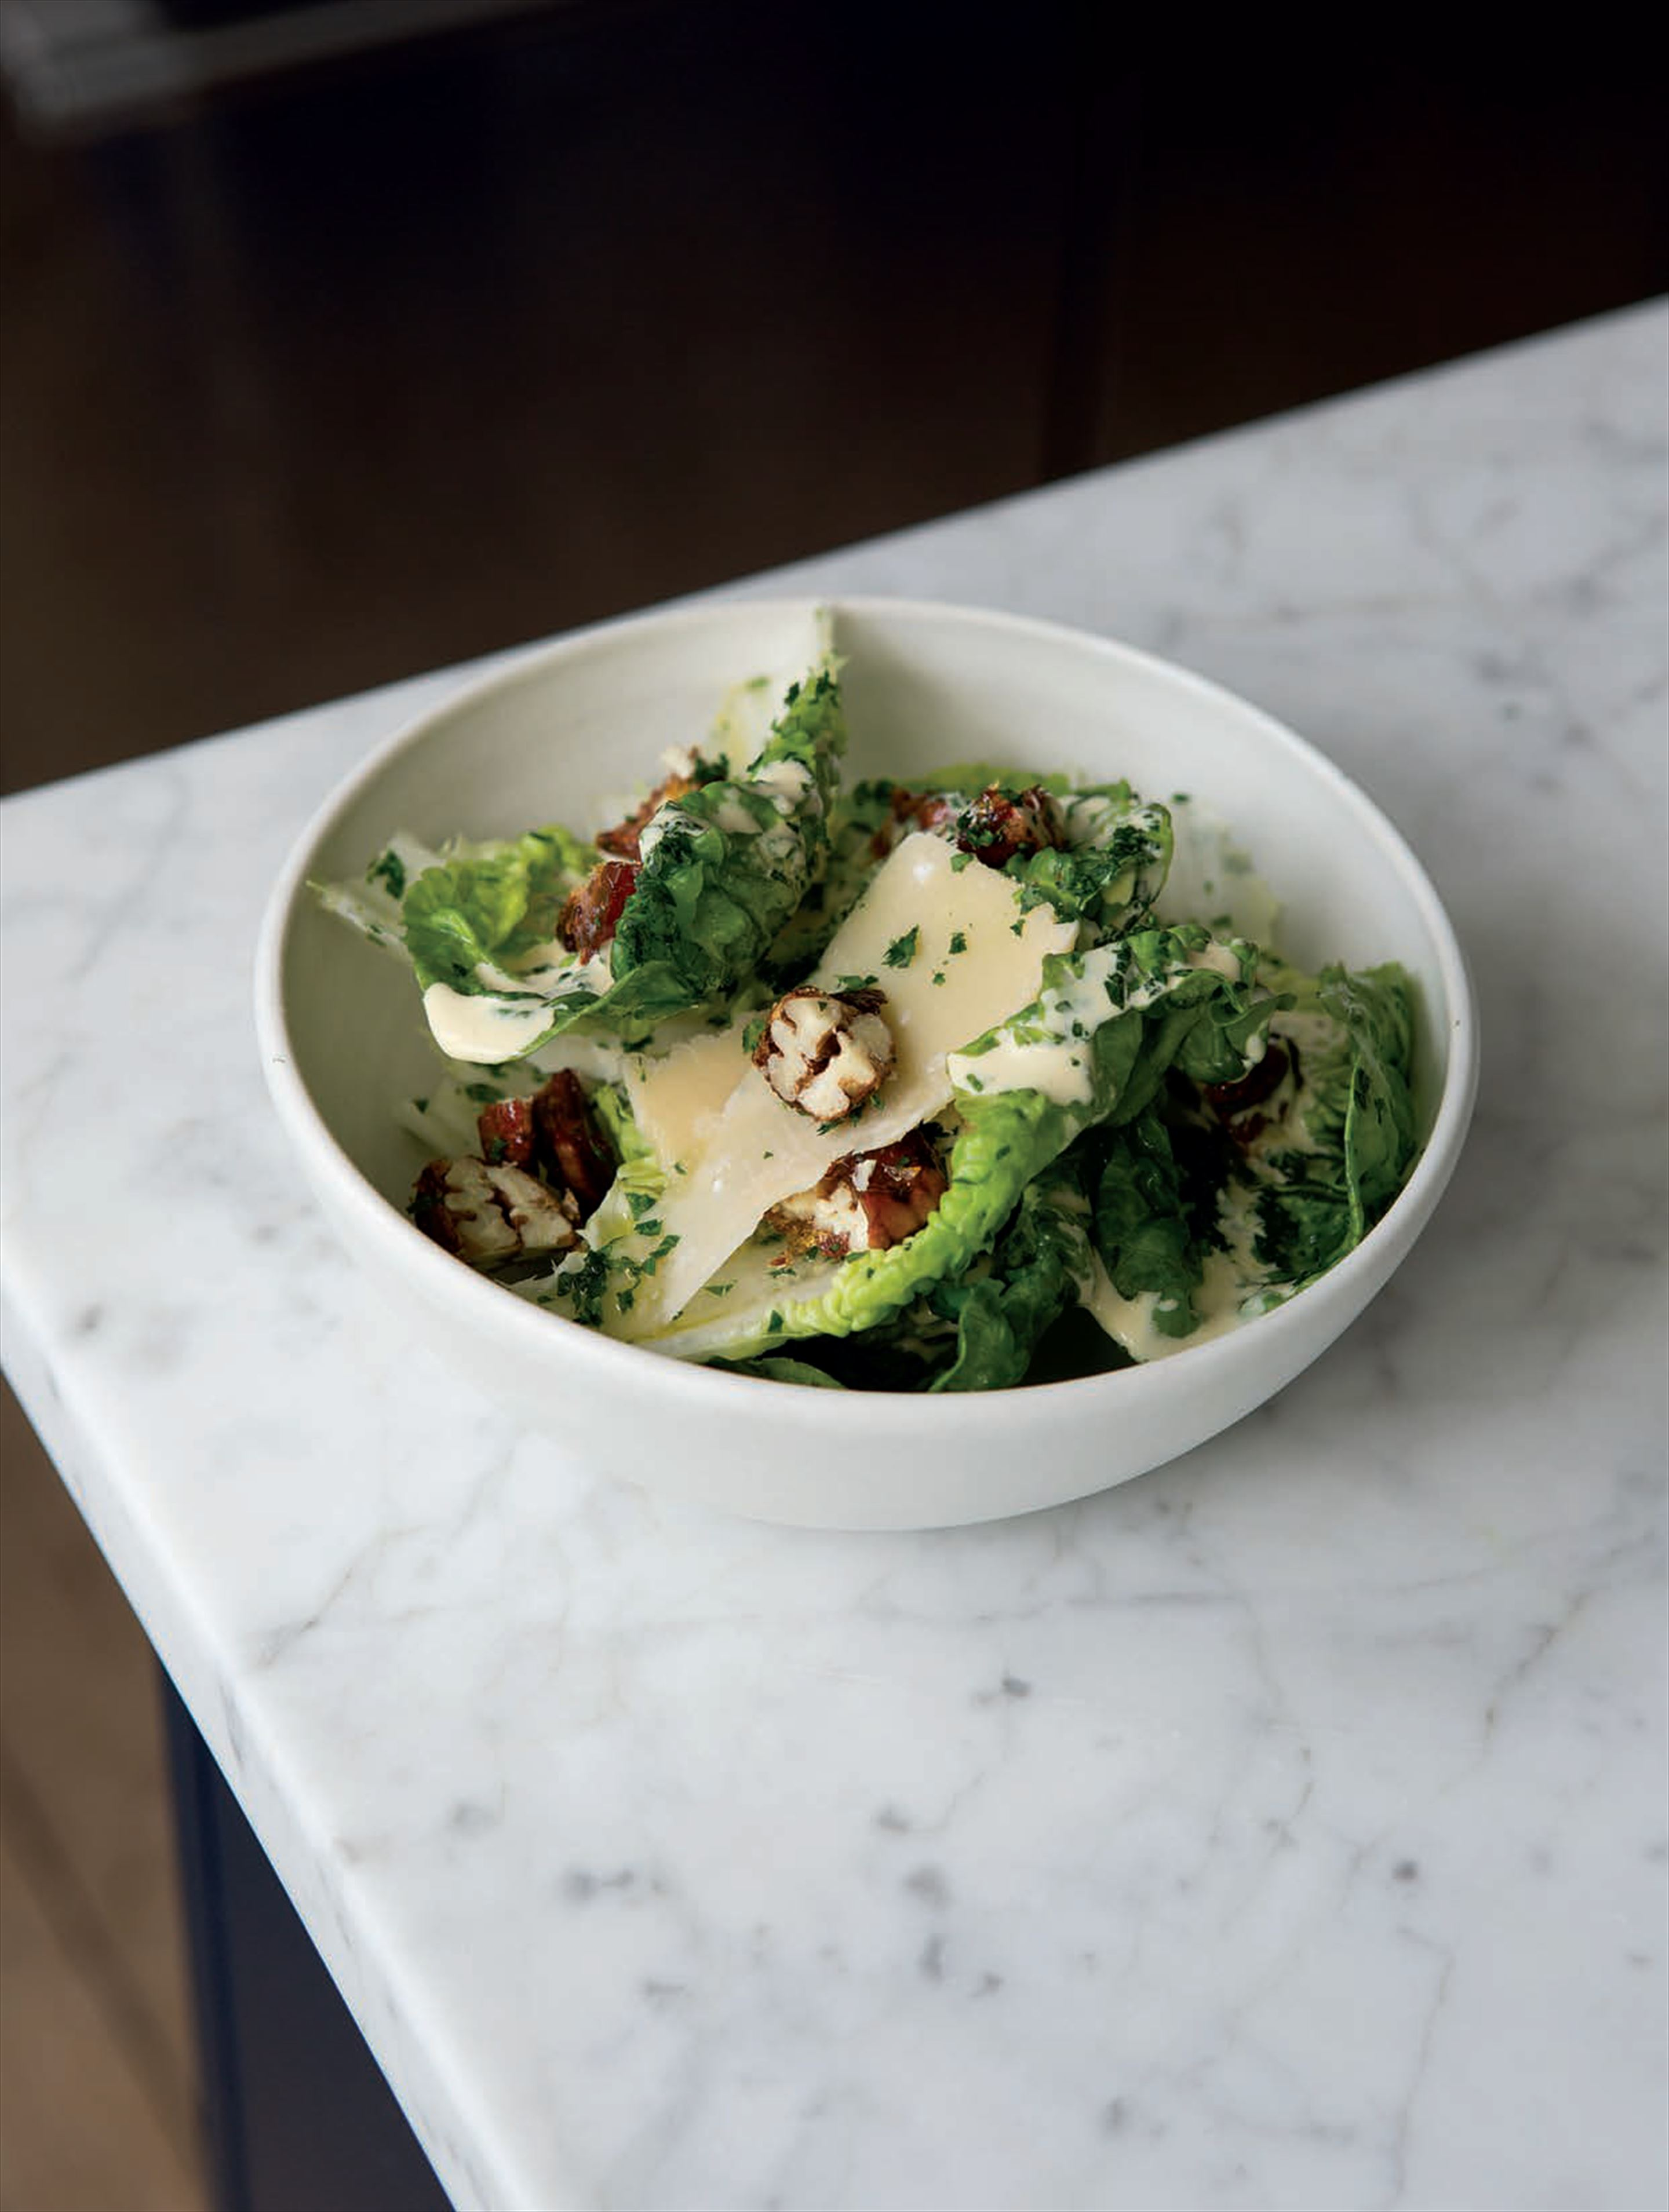 Little gem, candied walnuts and Caesar dressing